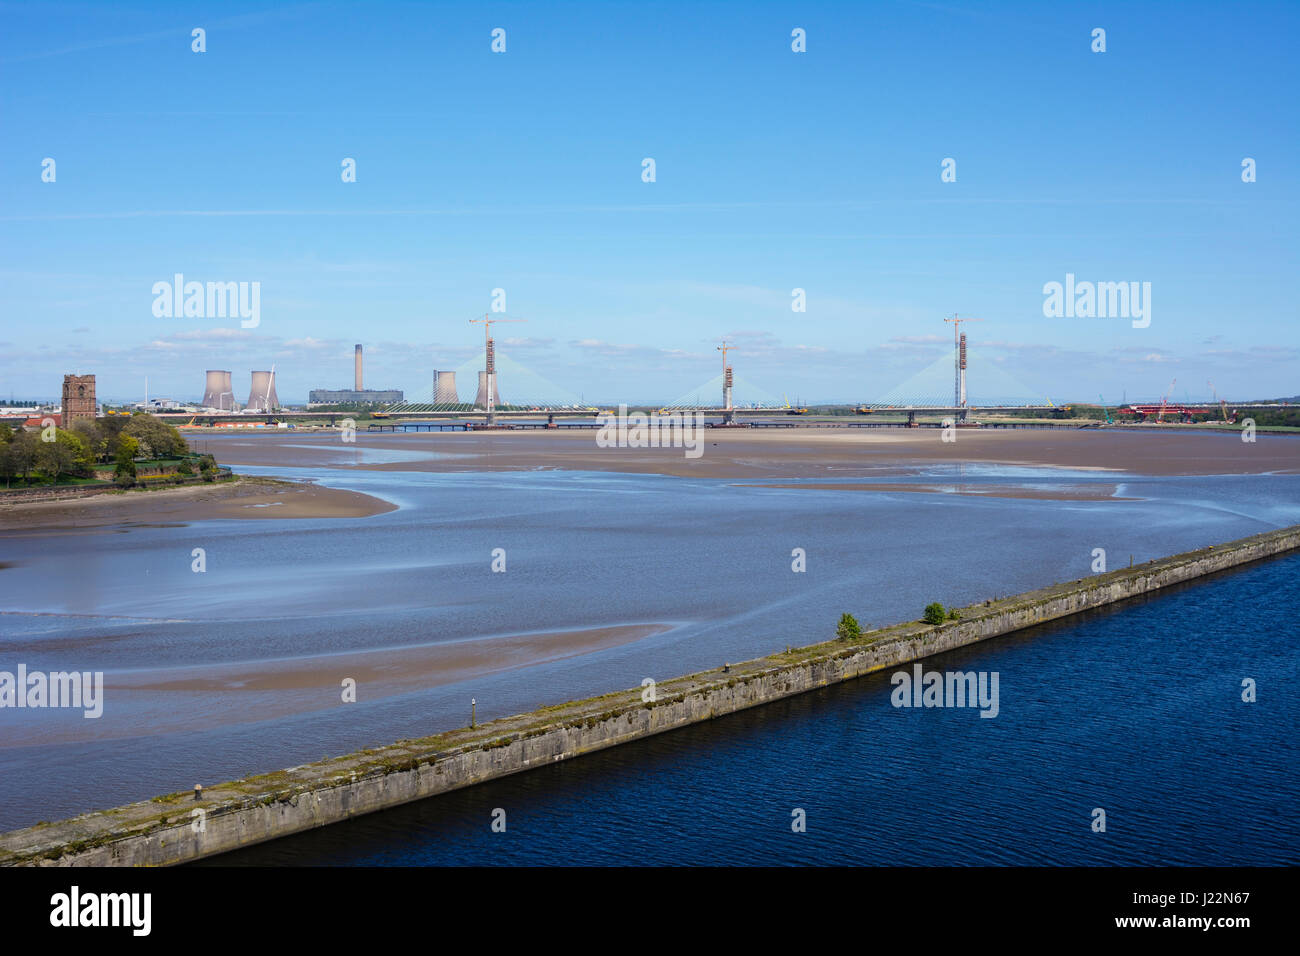 Mersey Gateway bridge under construction across the River Mersey and Manchester Ship Canal between Runcorn and Widnes. - Stock Image